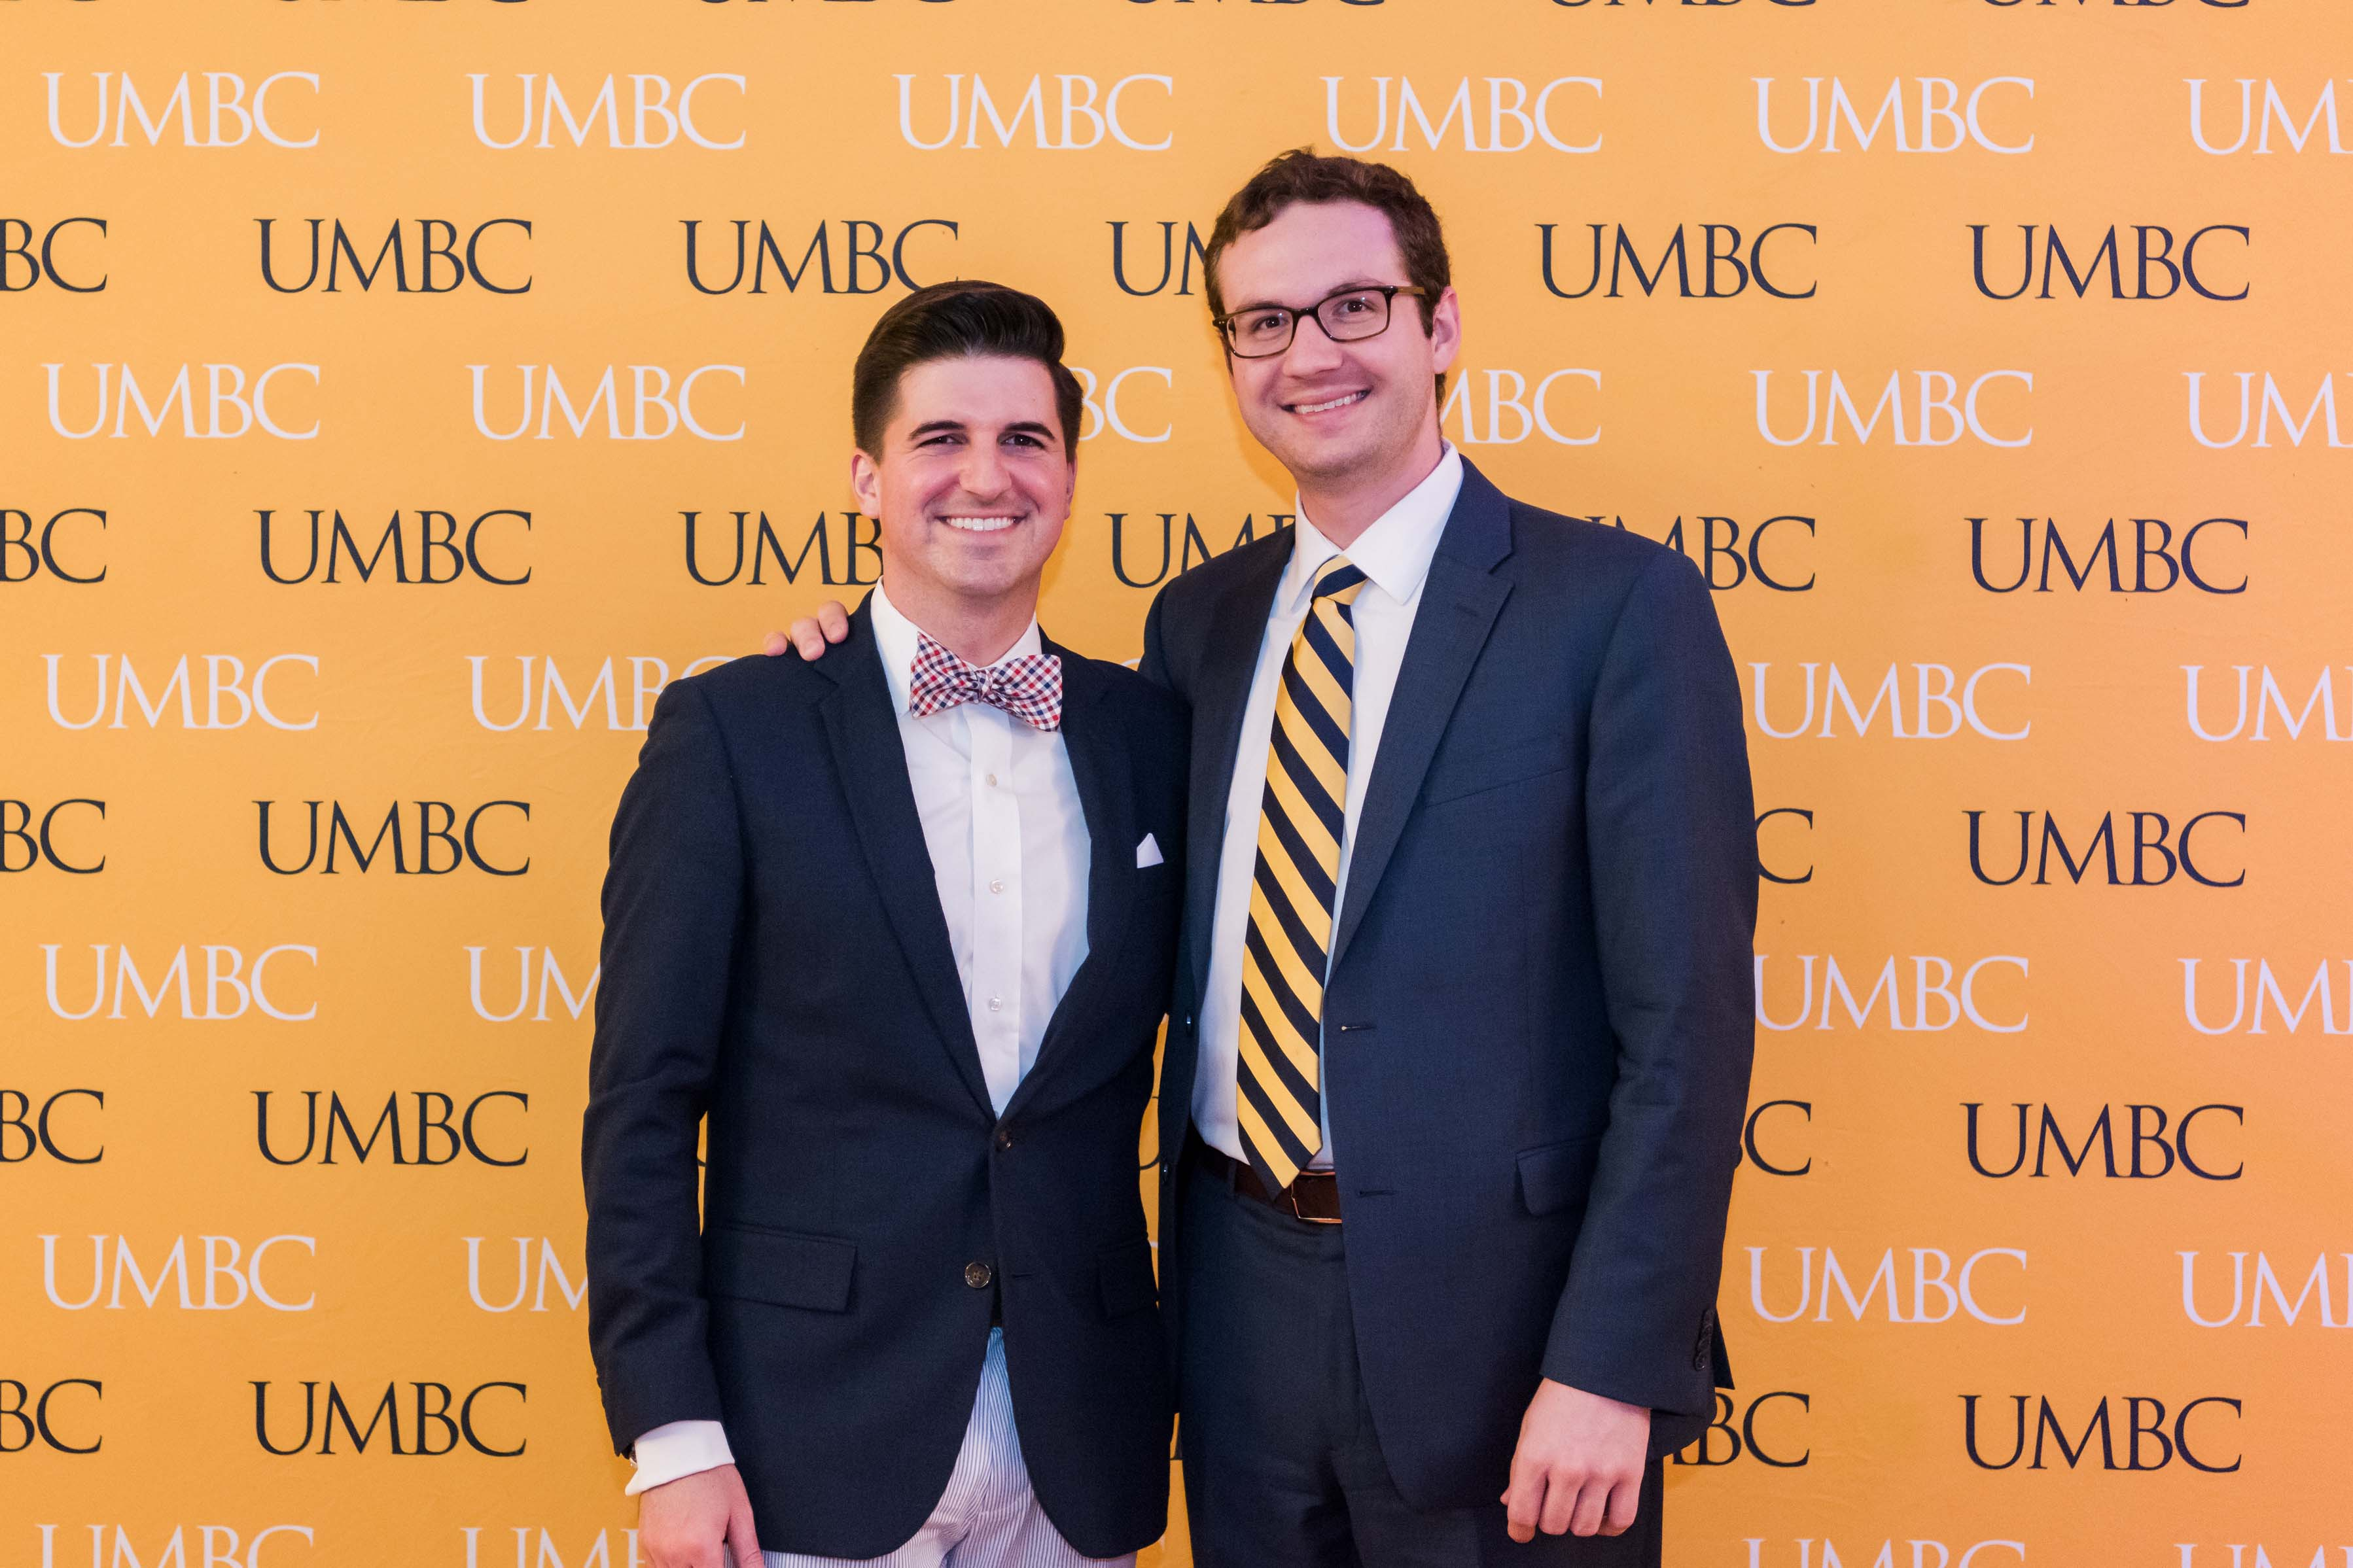 Two guys pose together in front of UMBC wall for wine tasting 2018